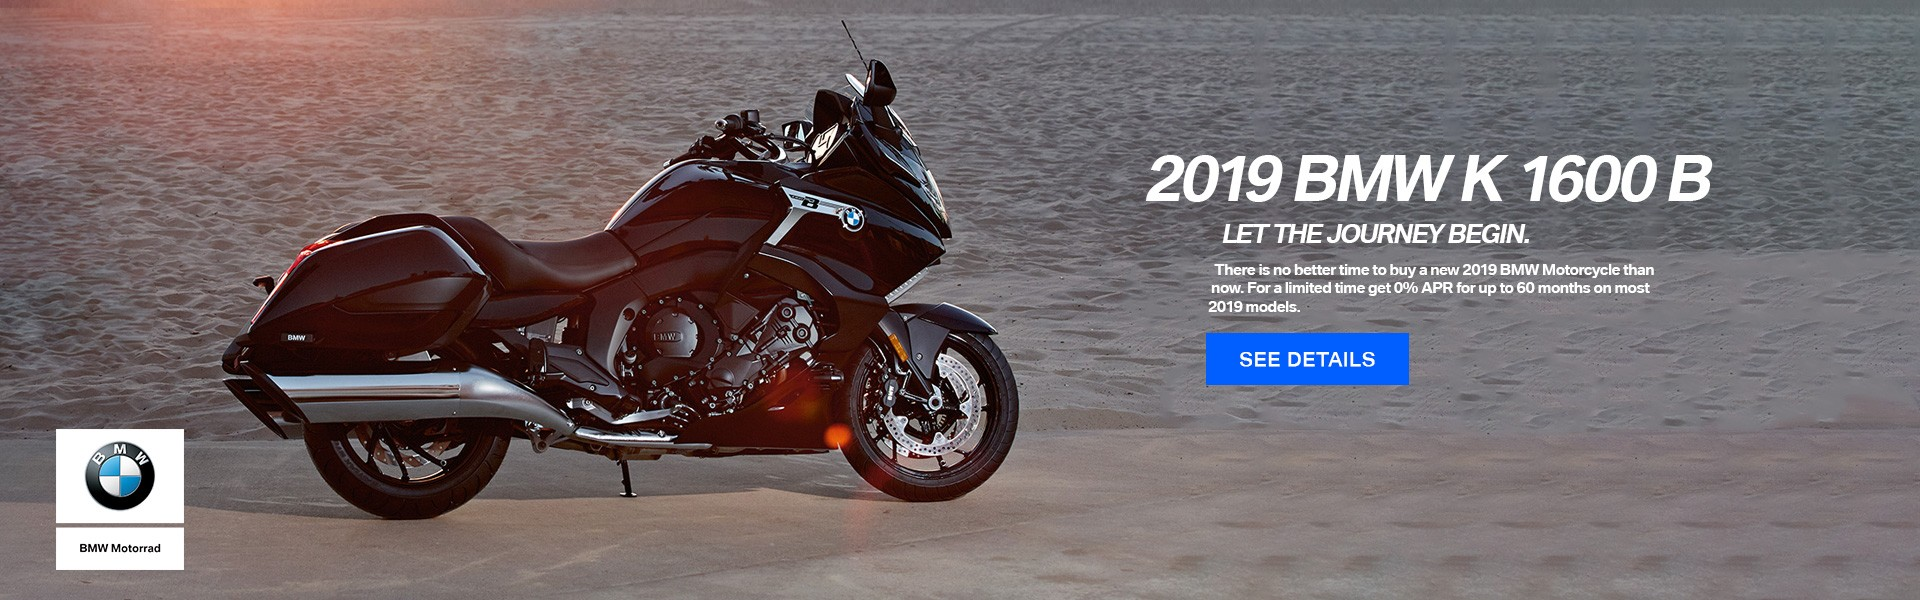 New BMW Motorcycles | Southern California BMW Motorcycle Dealers